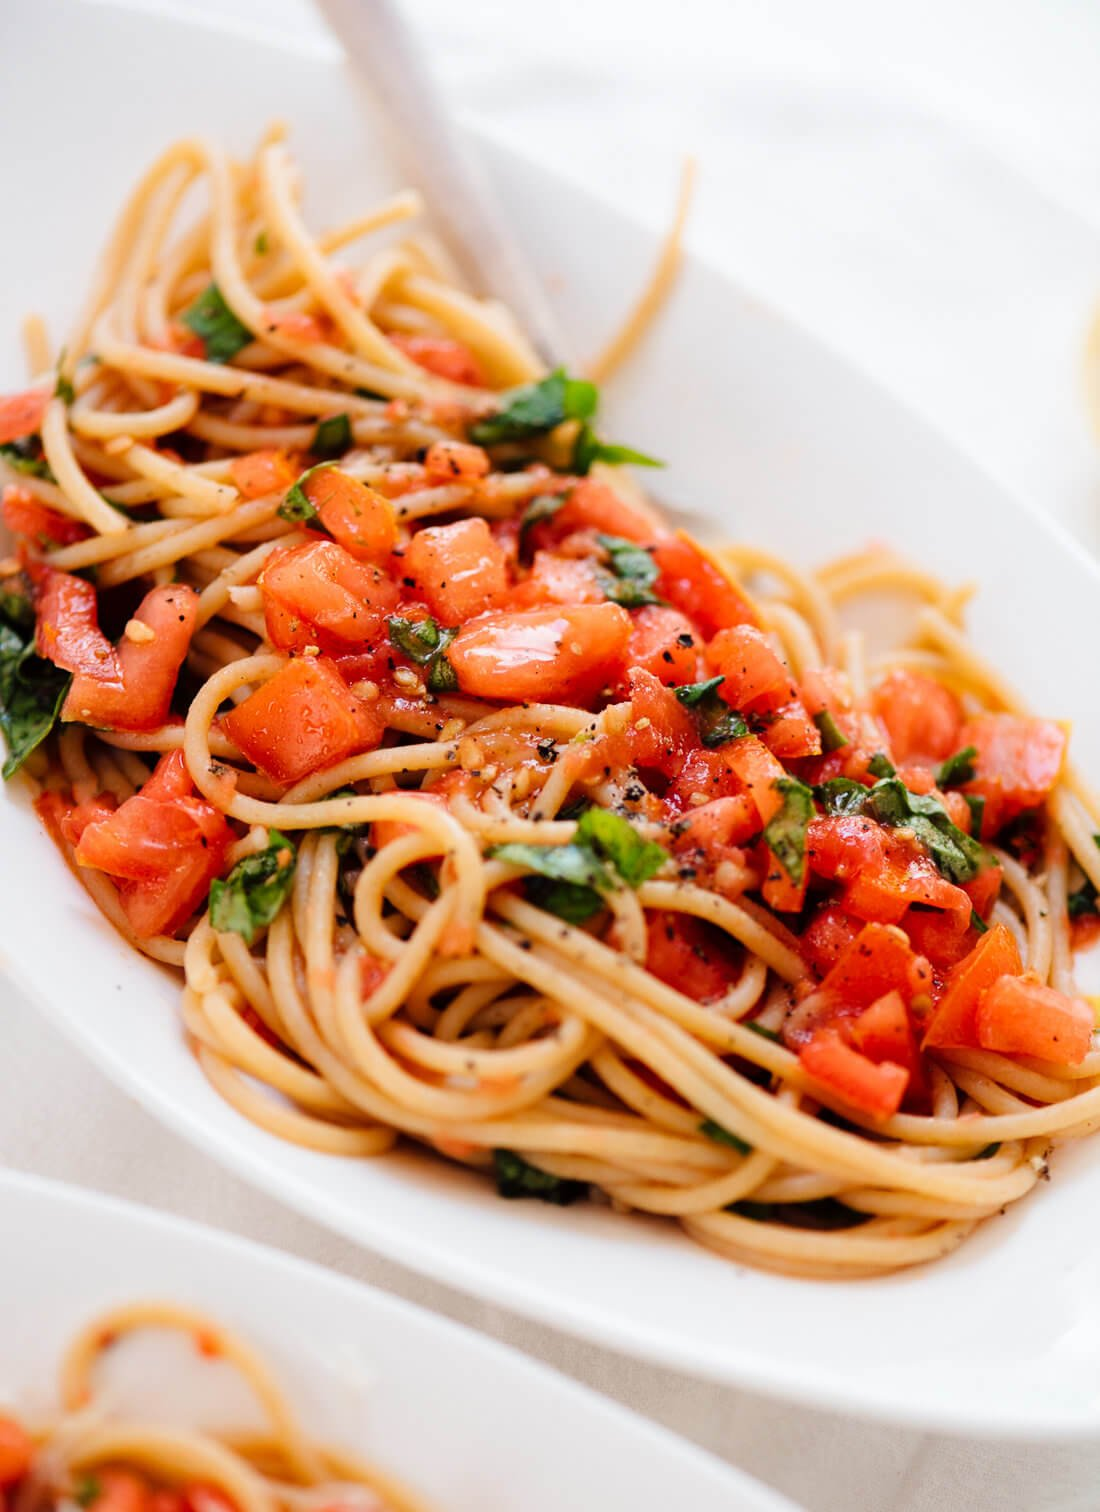 Spaghetti with fresh tomato sauce, perfect for those ripe summer tomatoes!